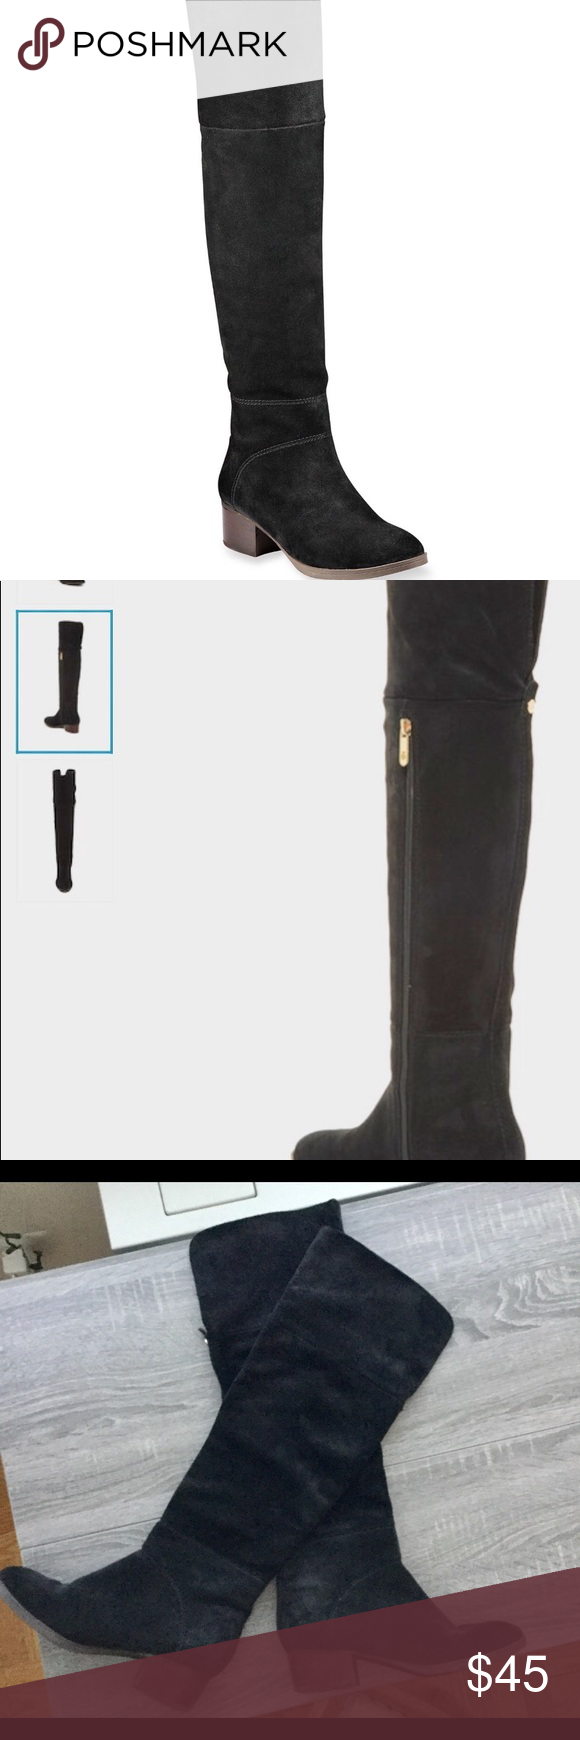 """0481abb21d31ca Suede over-the-knee boot by Tommy Hilfiger Black suede over-the-knee boot  by Tommy Hilfiger. Almond toe  heel is about 1.5""""  side half zip  slightly  slouchy ..."""